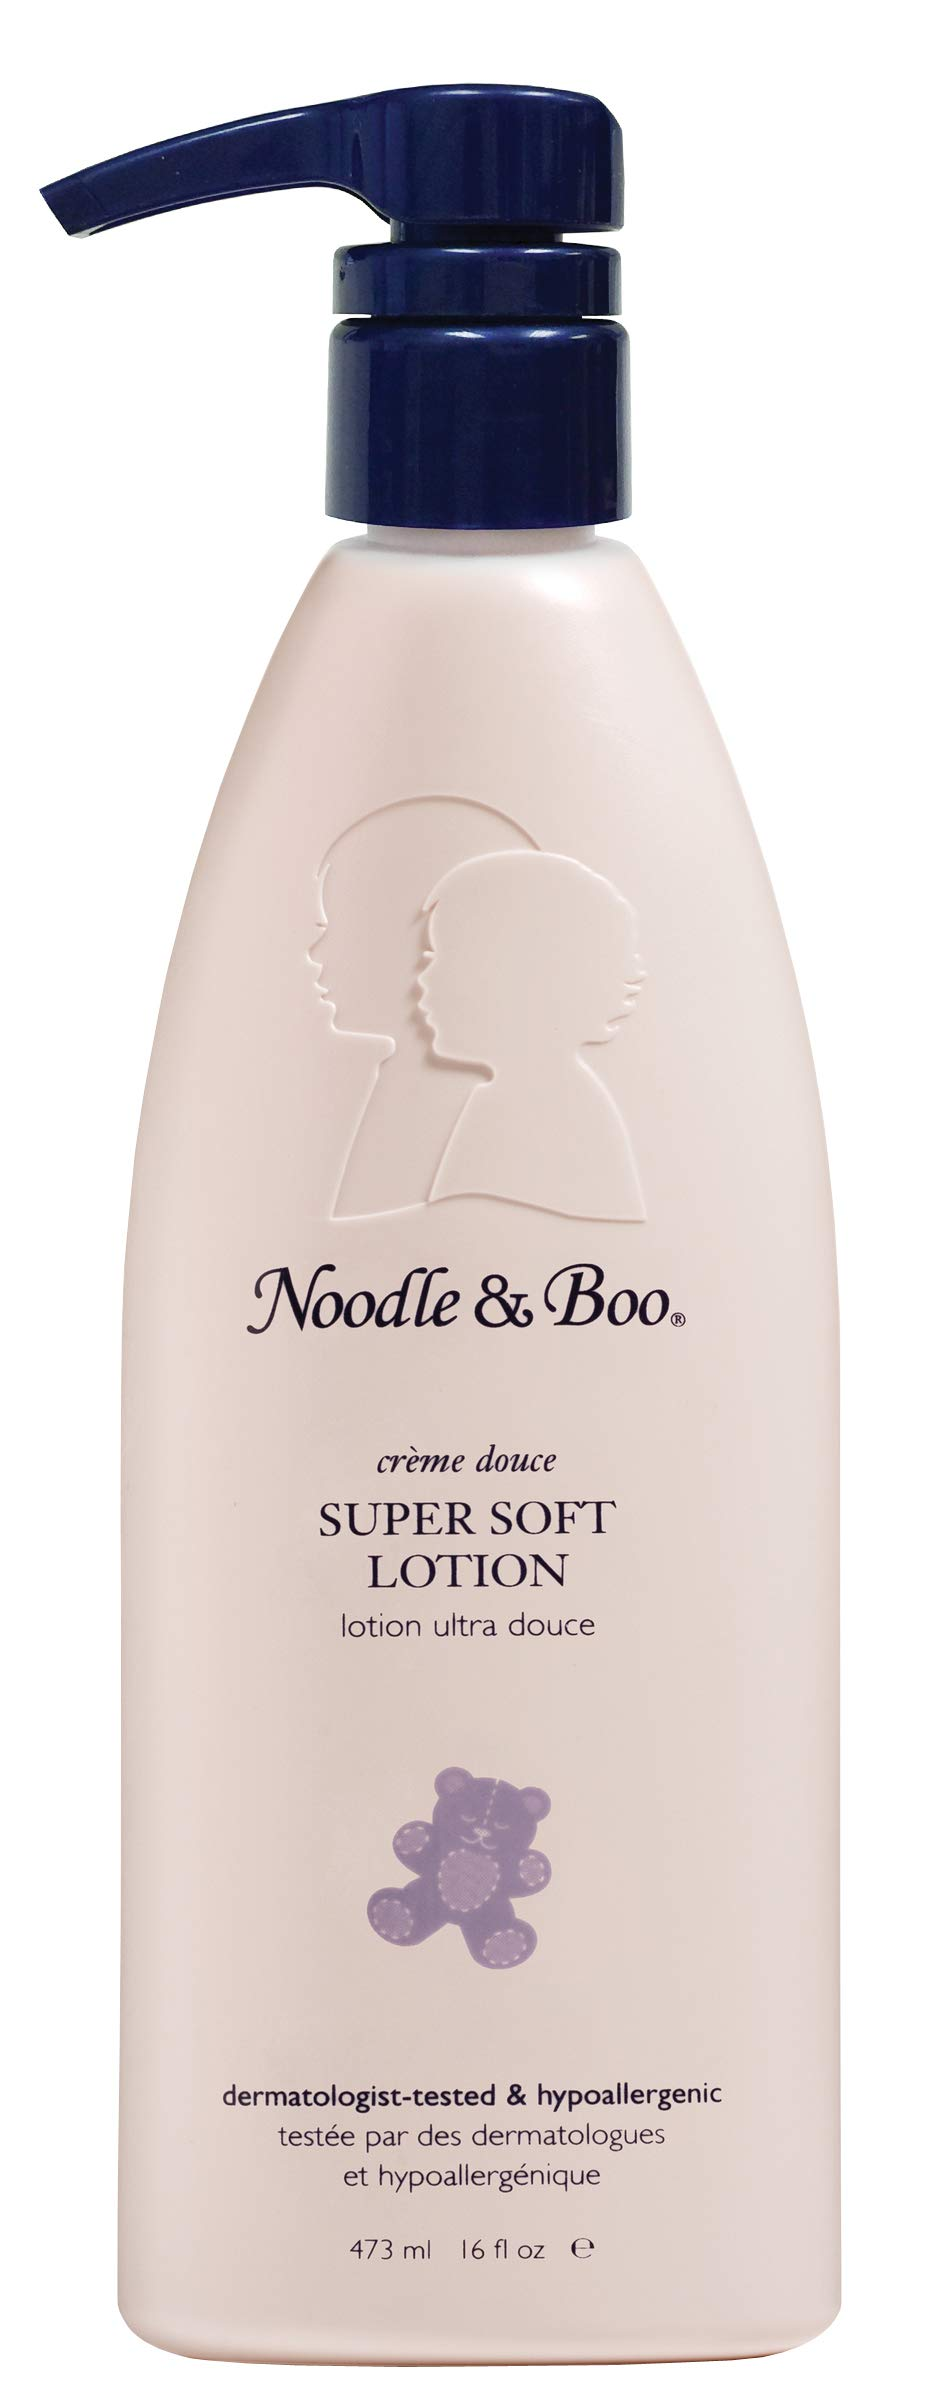 Noodle & Boo Super Soft Moisturizing Lotion for Daily Baby Care, Sensitive Skin and Hypoallergenic, 16 Oz